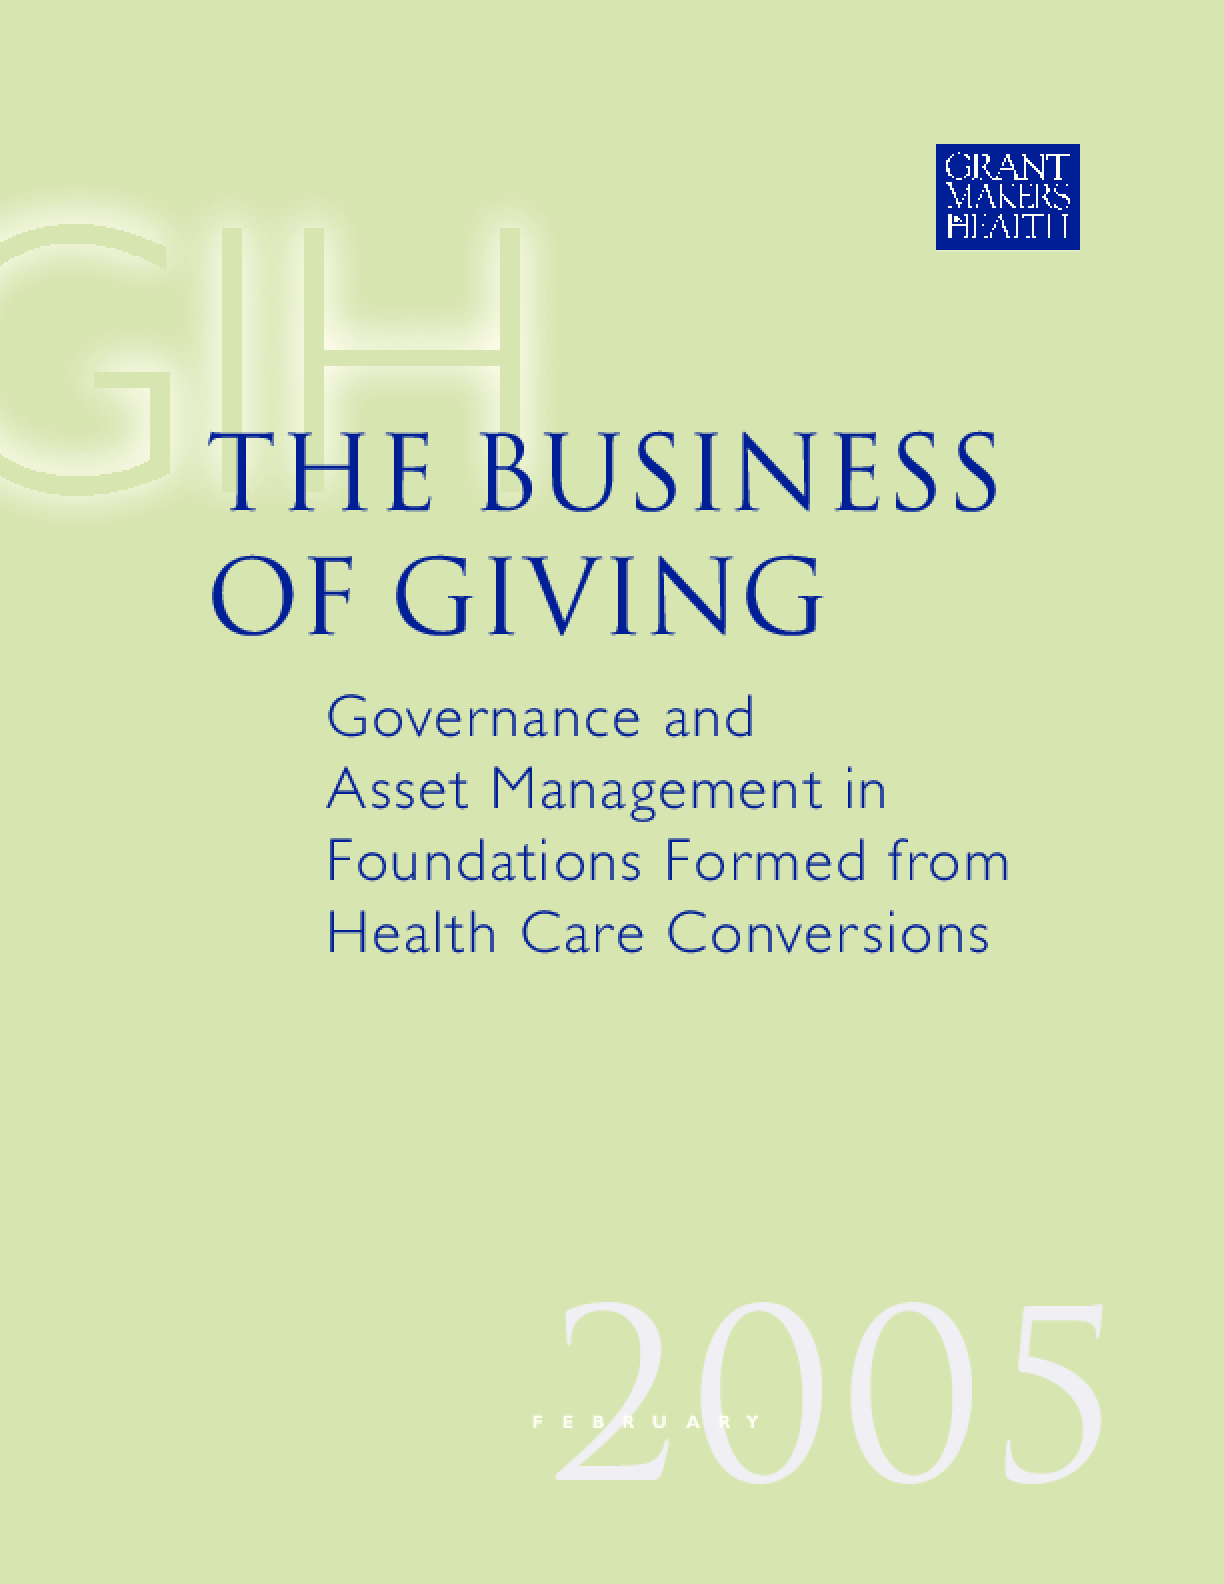 The Business of Giving: Governance and Asset Management in Foundations Formed From Health Care Conversions